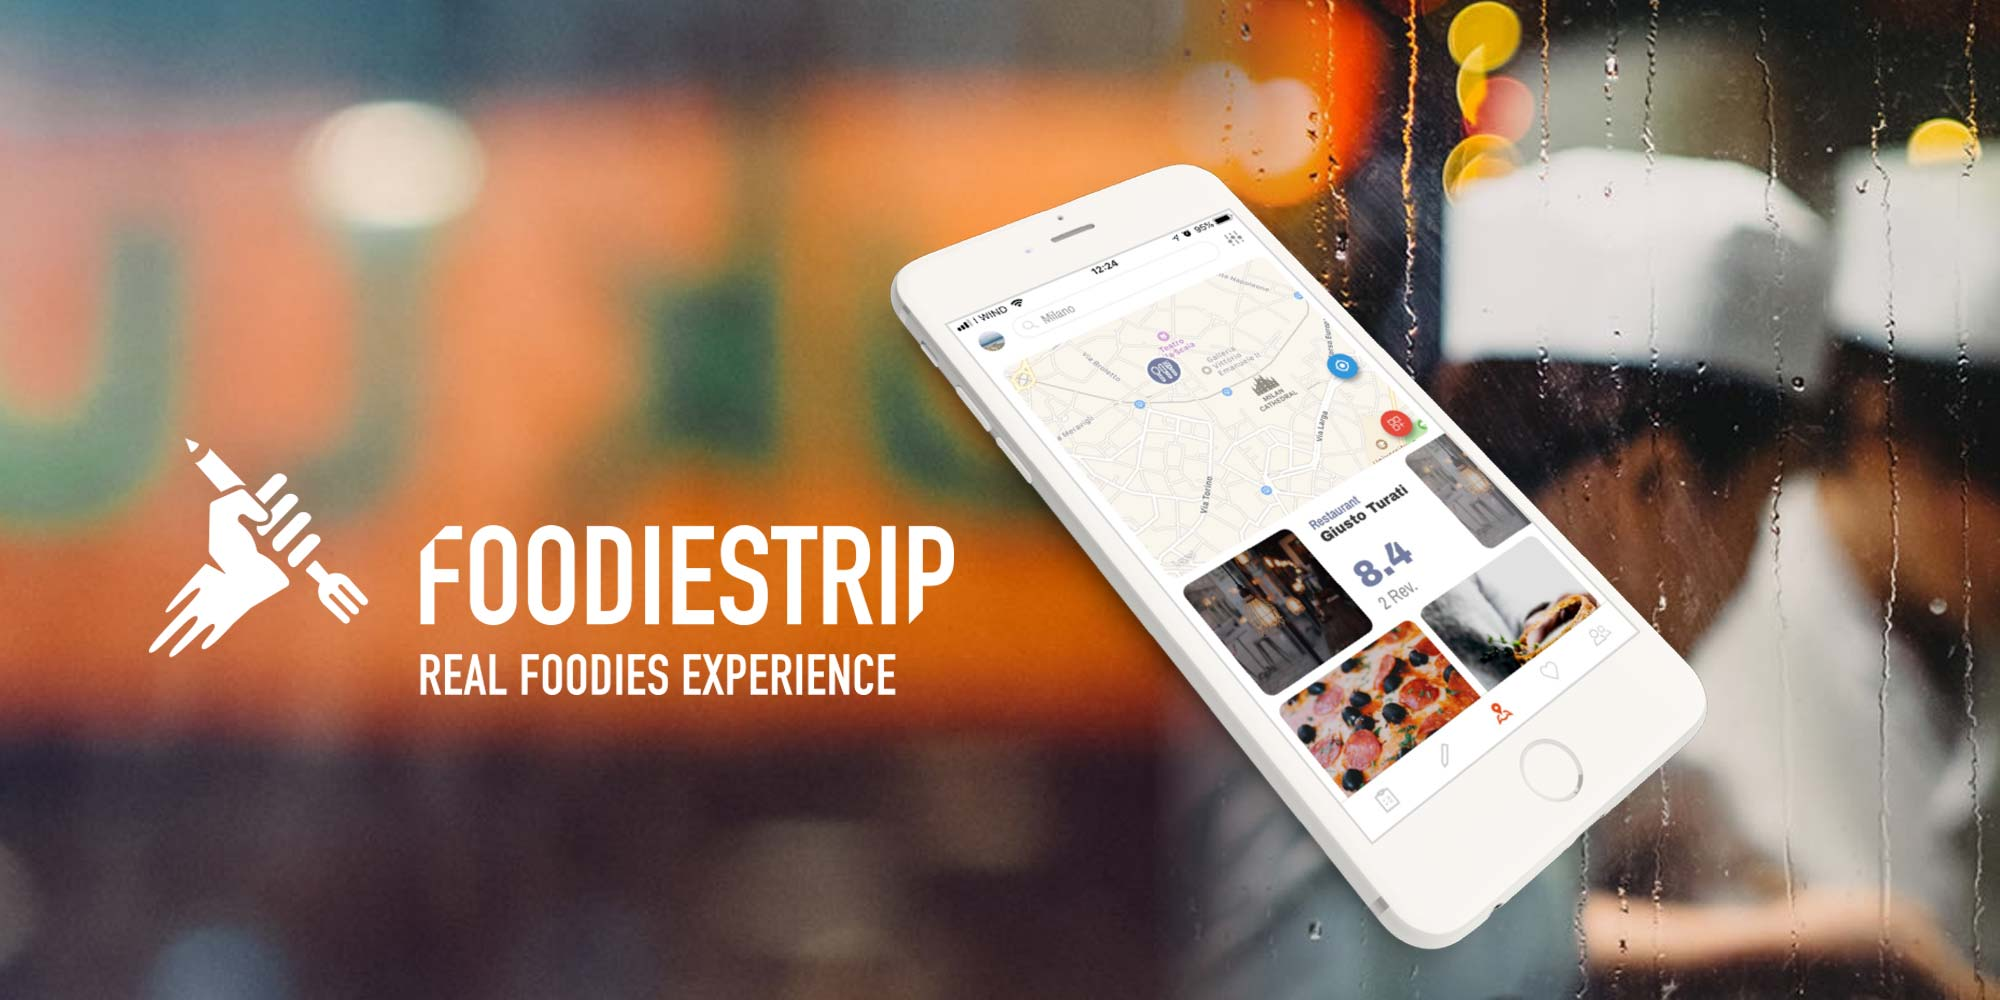 NEWSPAPERS START TO TALK ABOUT FOODIESTRIP